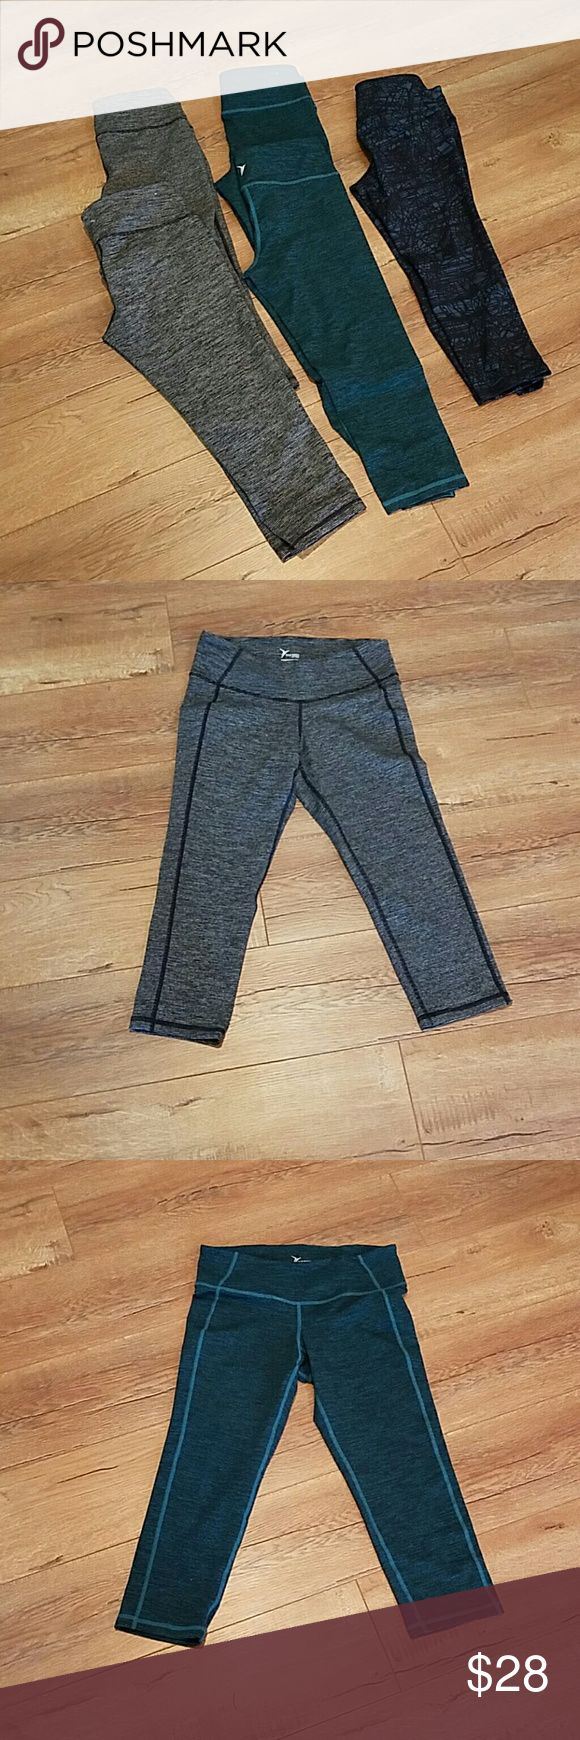 0ld navy Capri bundle Old navy Capri bundle set of 5. All in perfect condition. Some worn once or twice. Some not at all. Old Navy Pants Capris